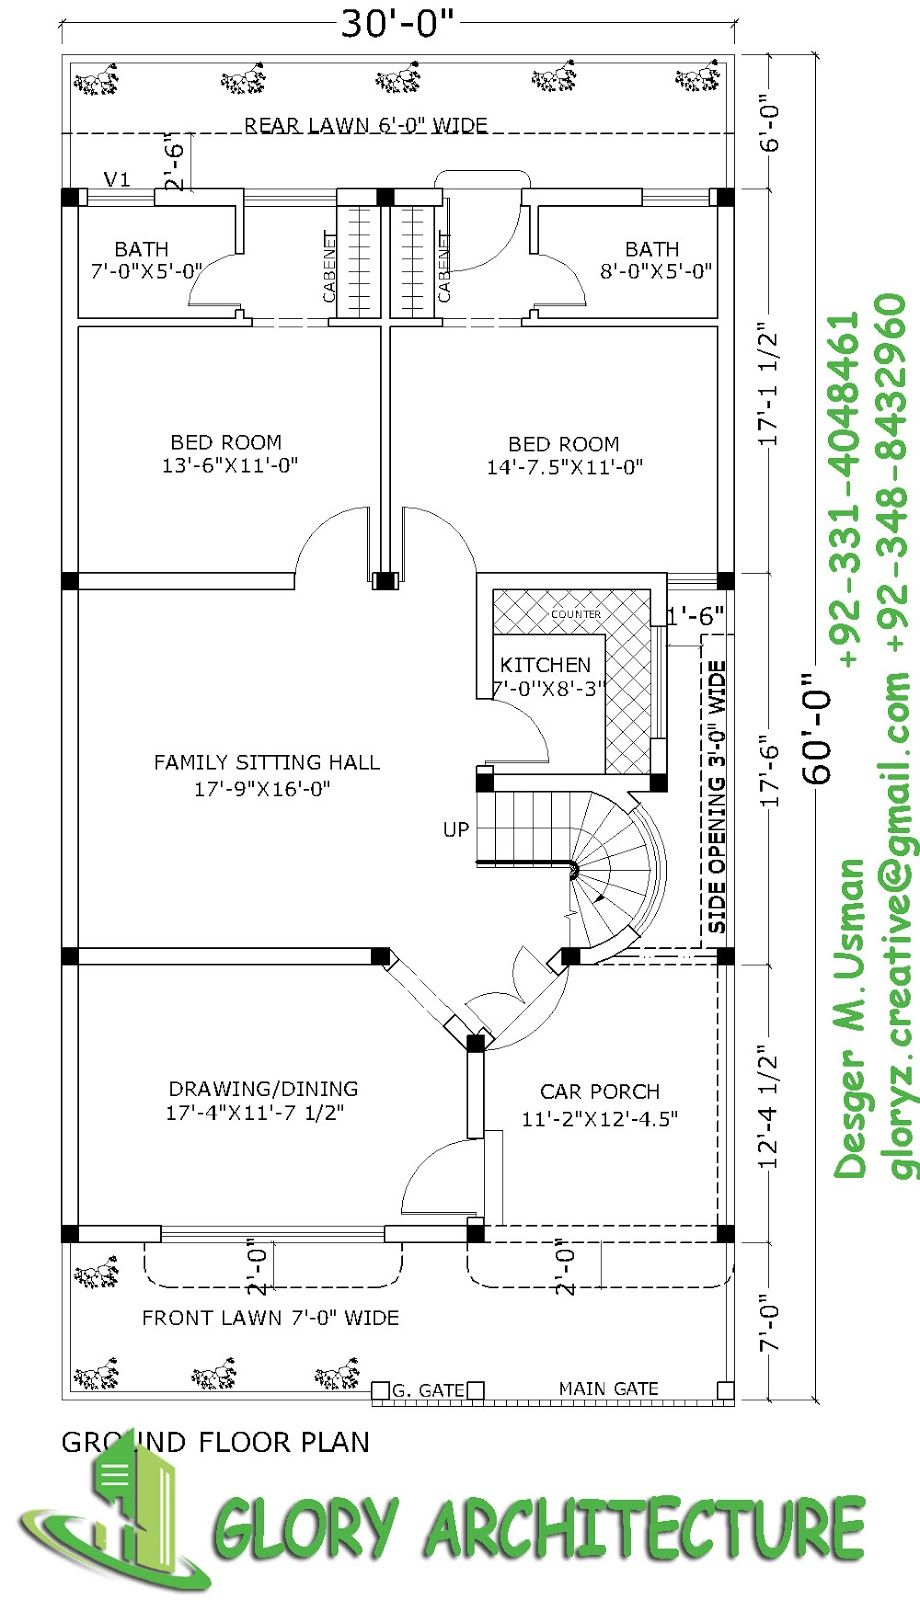 30x60 House Plan Elevation 3d View Drawings Pakistan House Plan Pakistan House Elevation 3d Elevation 30x50 House Plans Best House Plans My House Plans